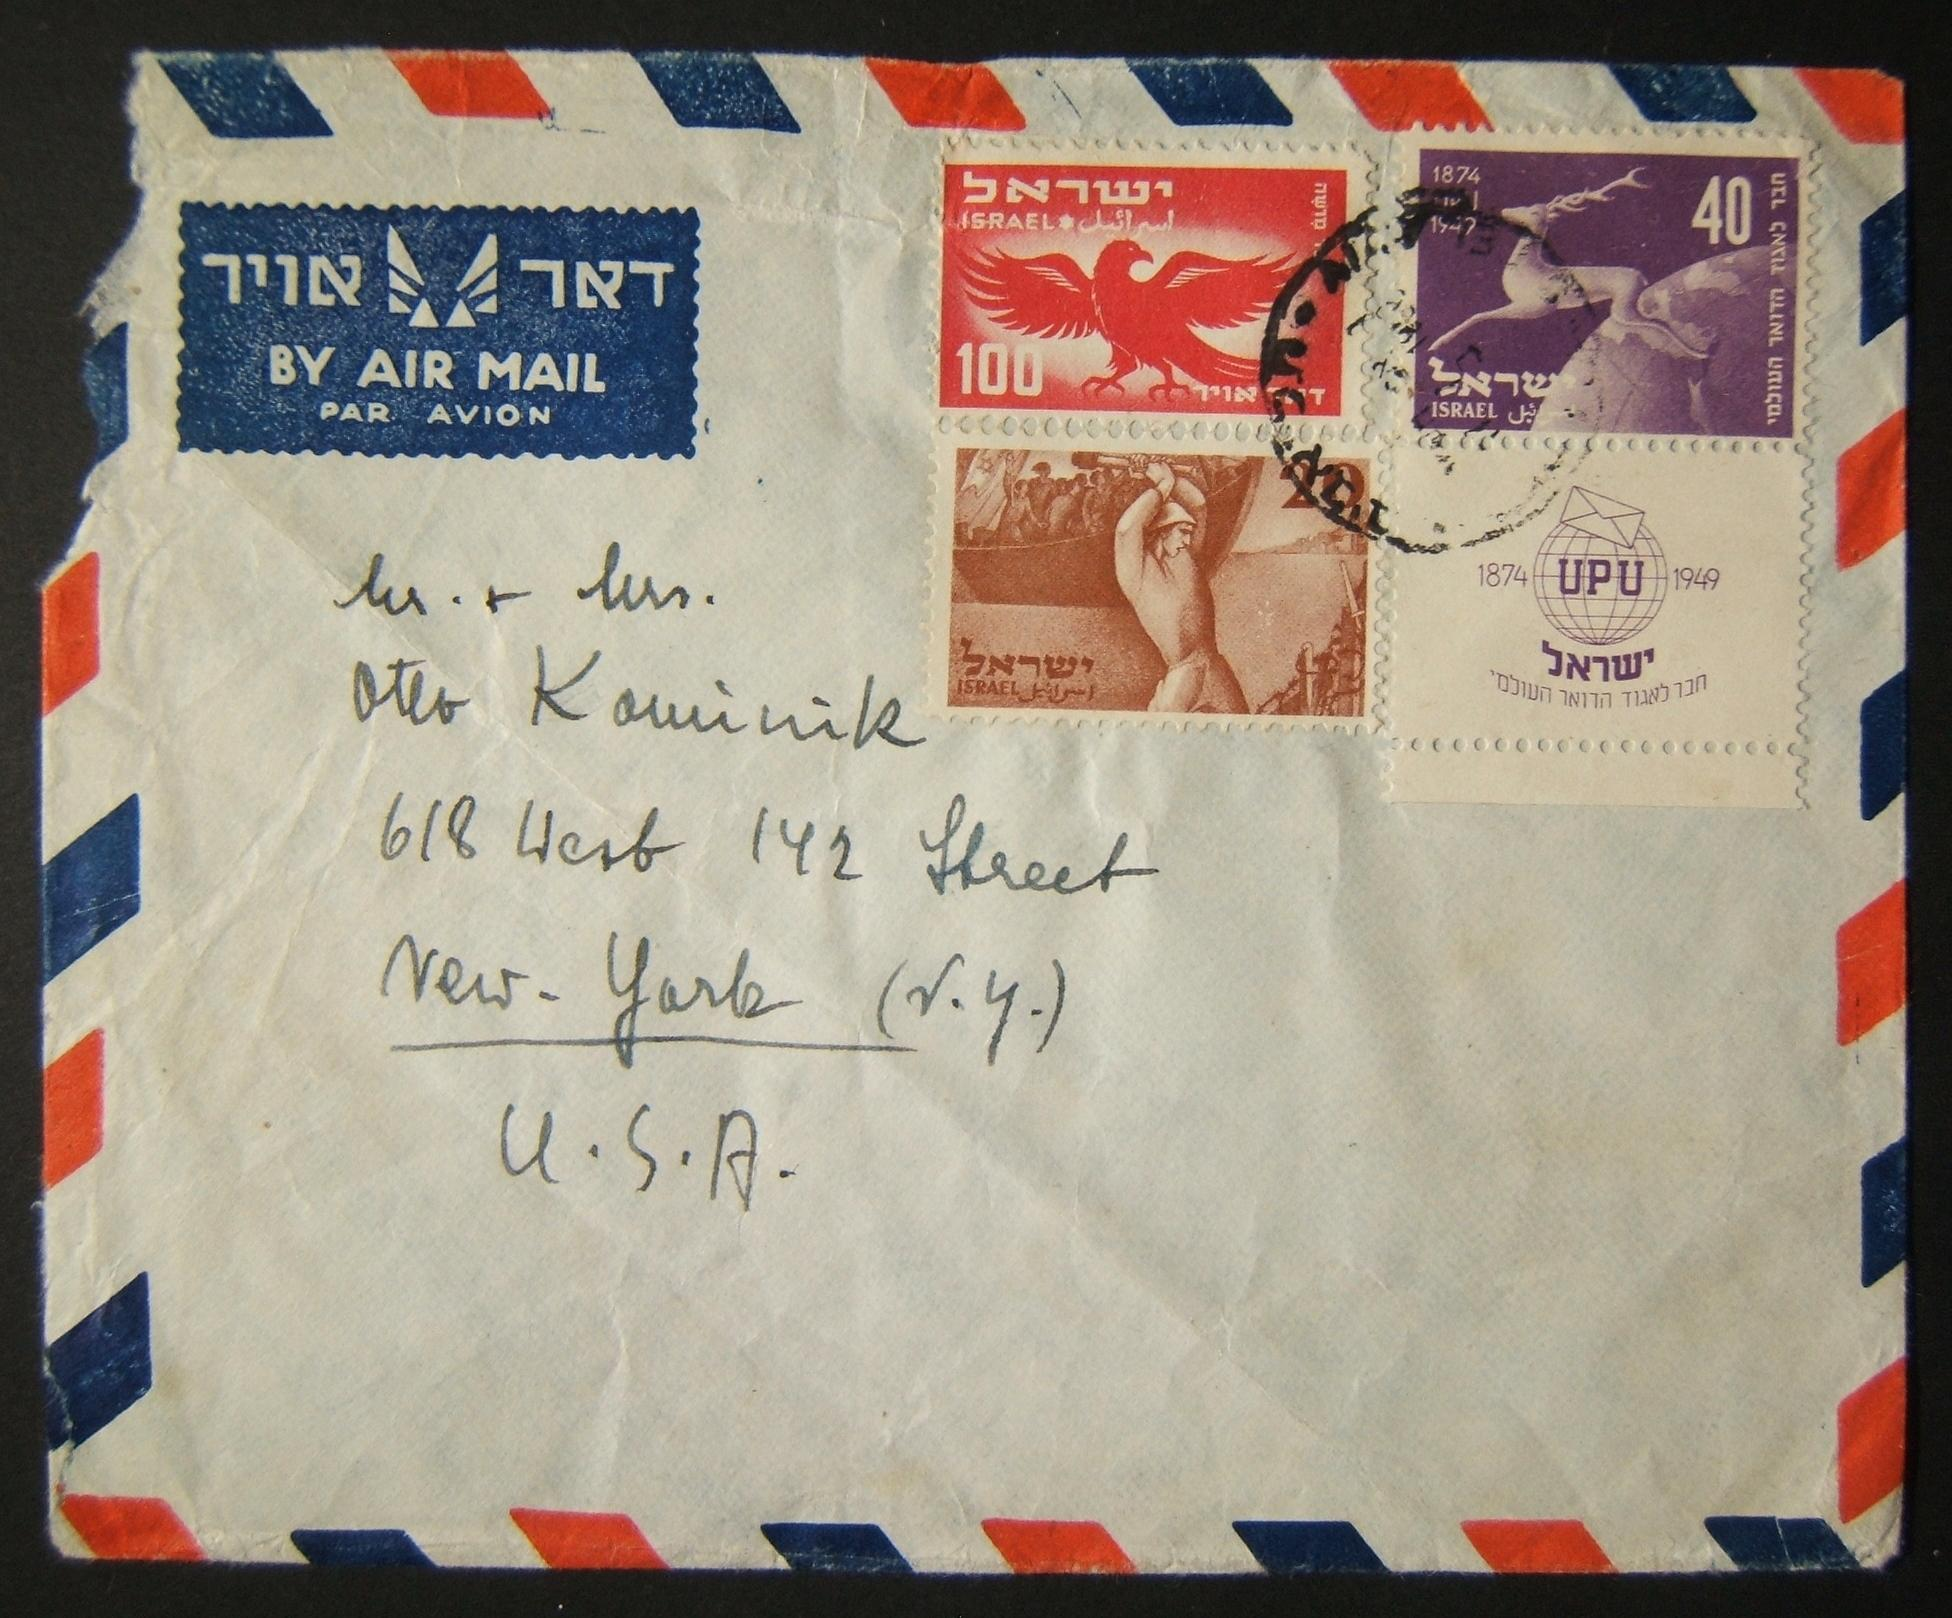 1950 airmail to US; full tabbed 40Pr UPU, 20Pr Independence & 100Pr Airmail stamps